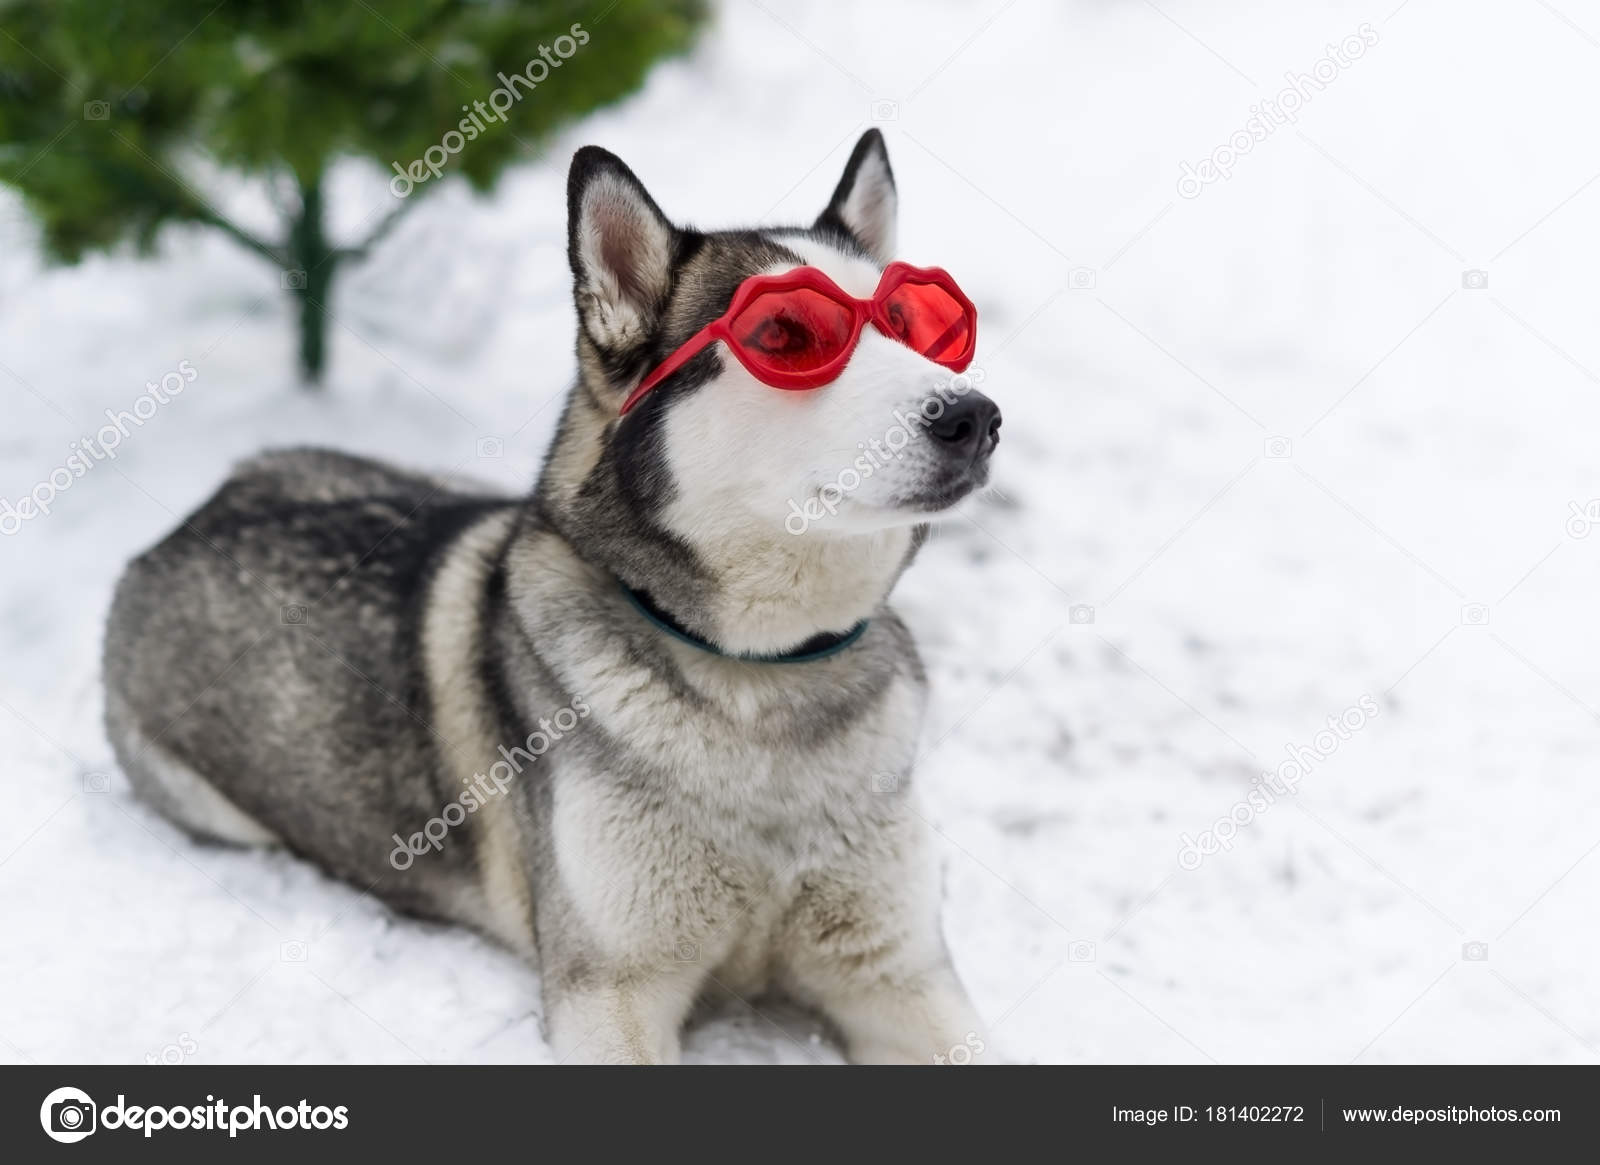 Cute Huskies Dog With Red Glasses On The Eyes Stock Photo C Avk78